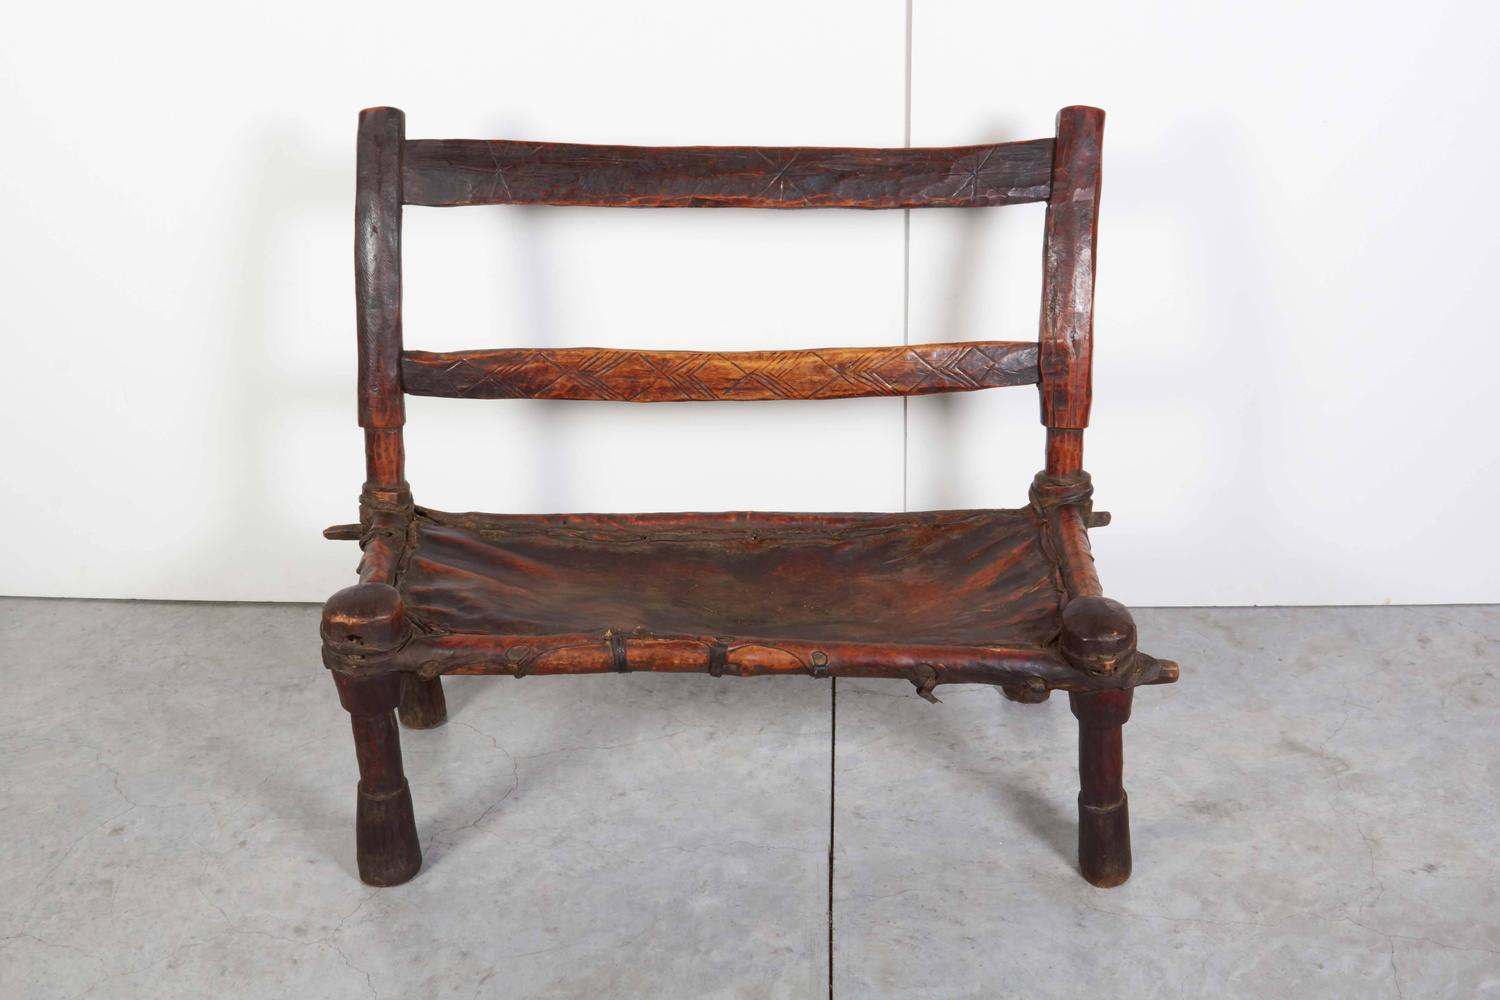 Antique Wood And Leather Bench With Great Patina And Clean